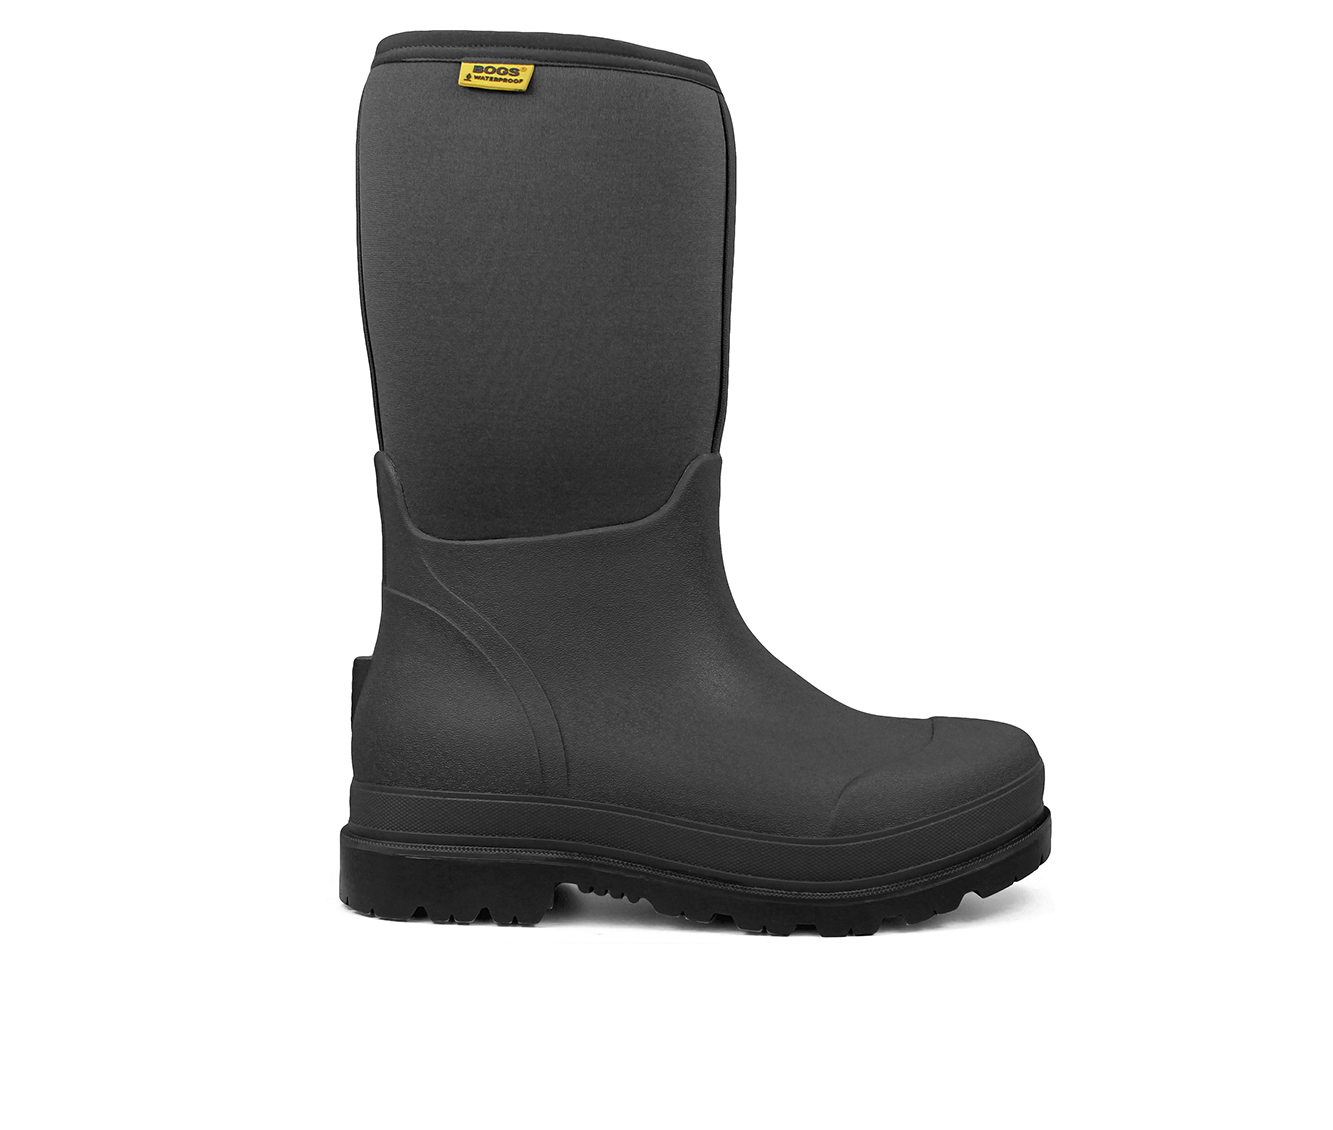 Bogs Footwear Stockman Insulated Men's Boots (Black Fabric)